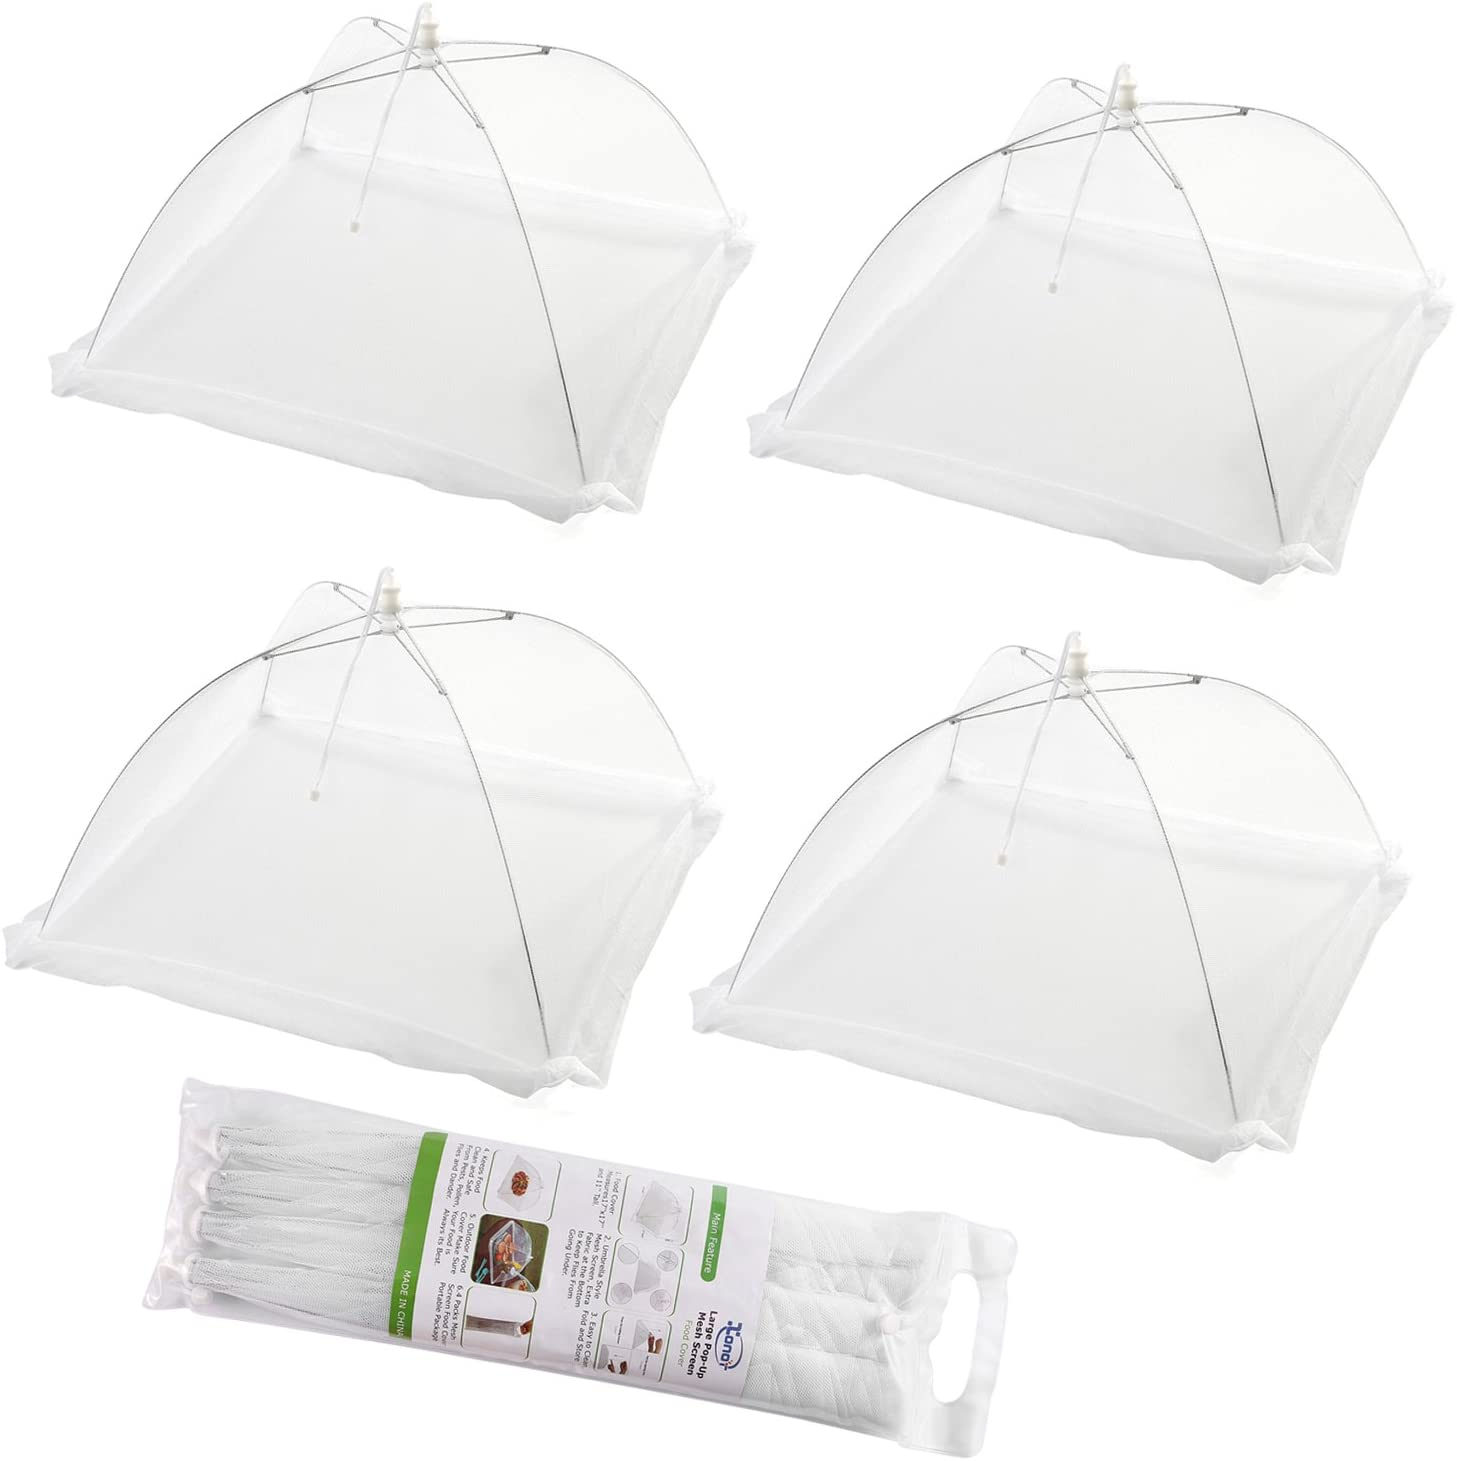 Set of 4 Large 40% OFF Cheap Sale Pop-Up Superior Mesh Screen Out - Food Tents Cover Keep